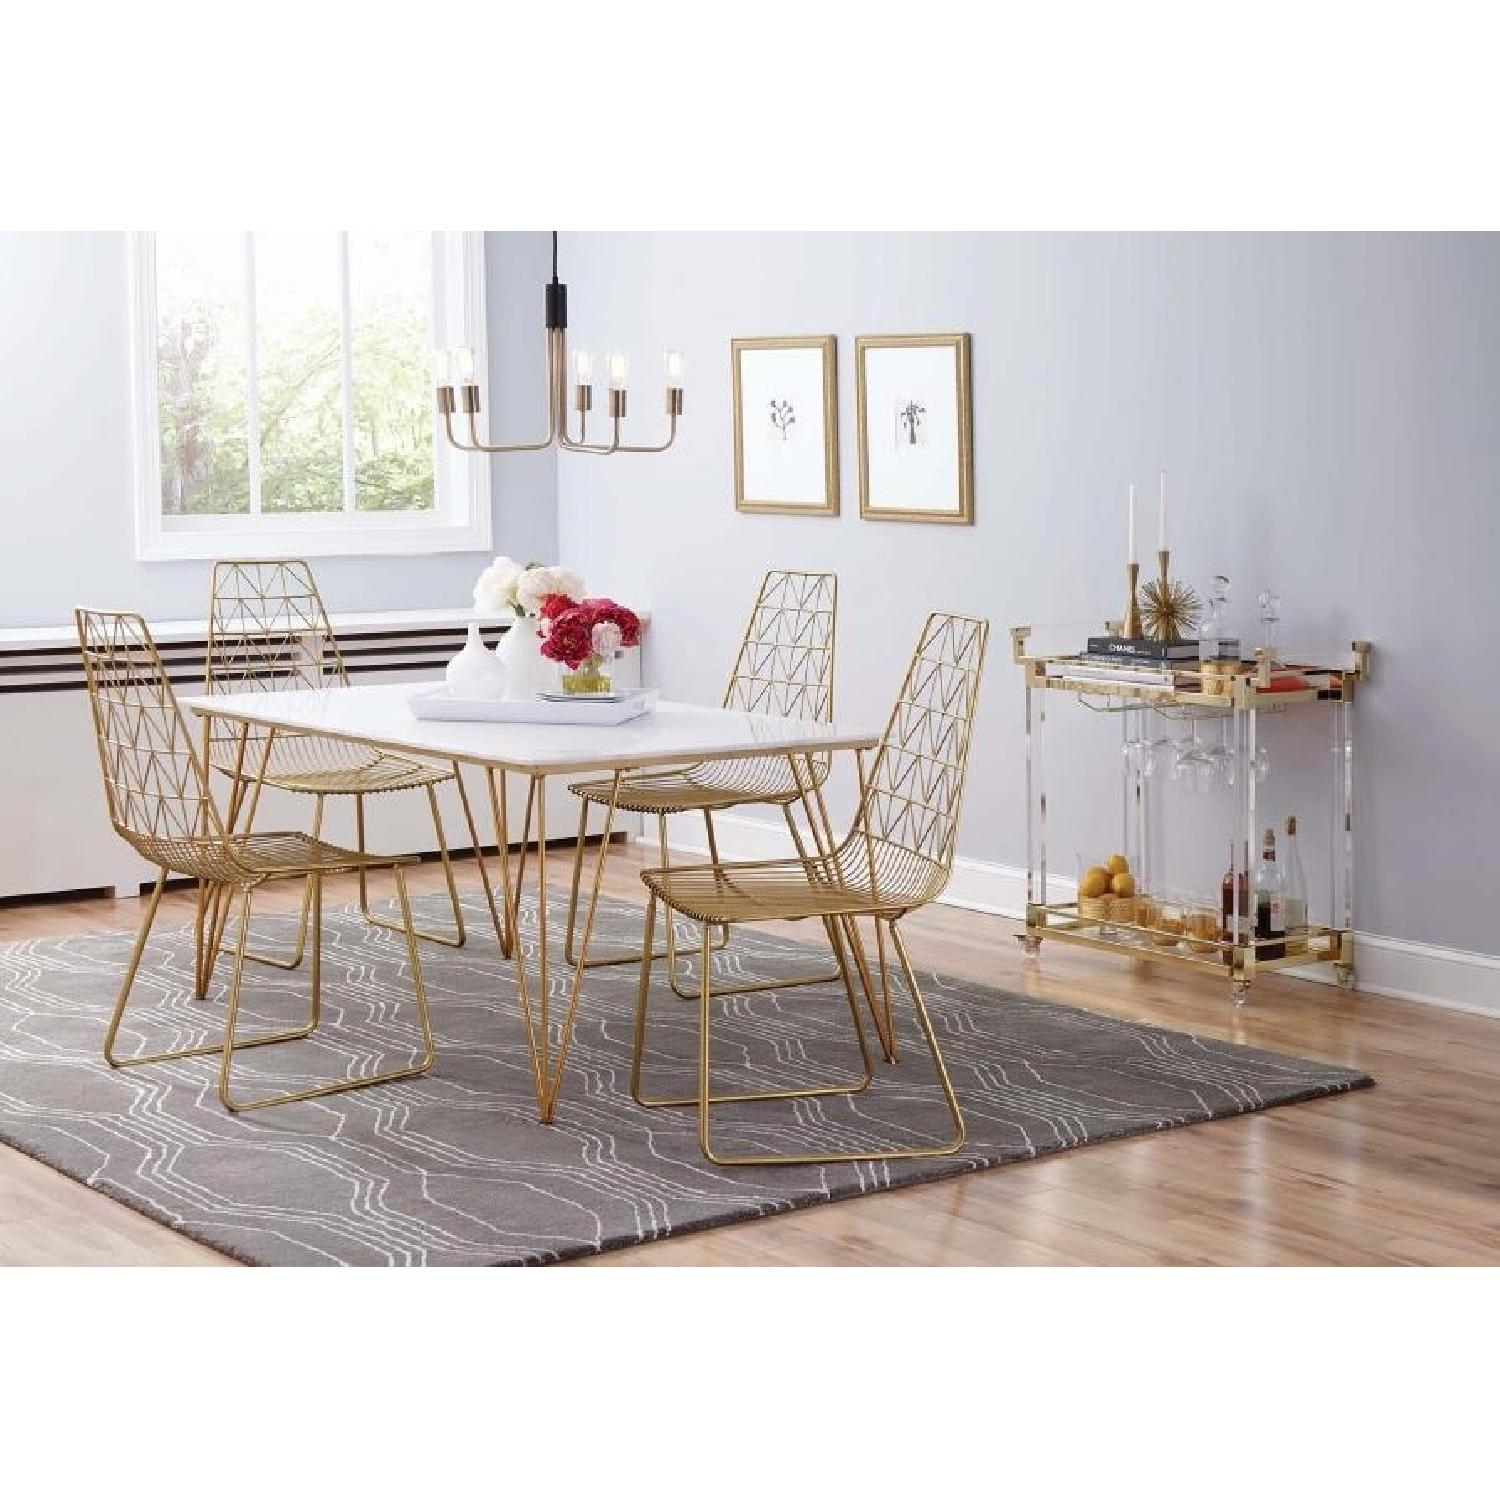 Italian Style Contemporary Metal Chair in Gold Finish